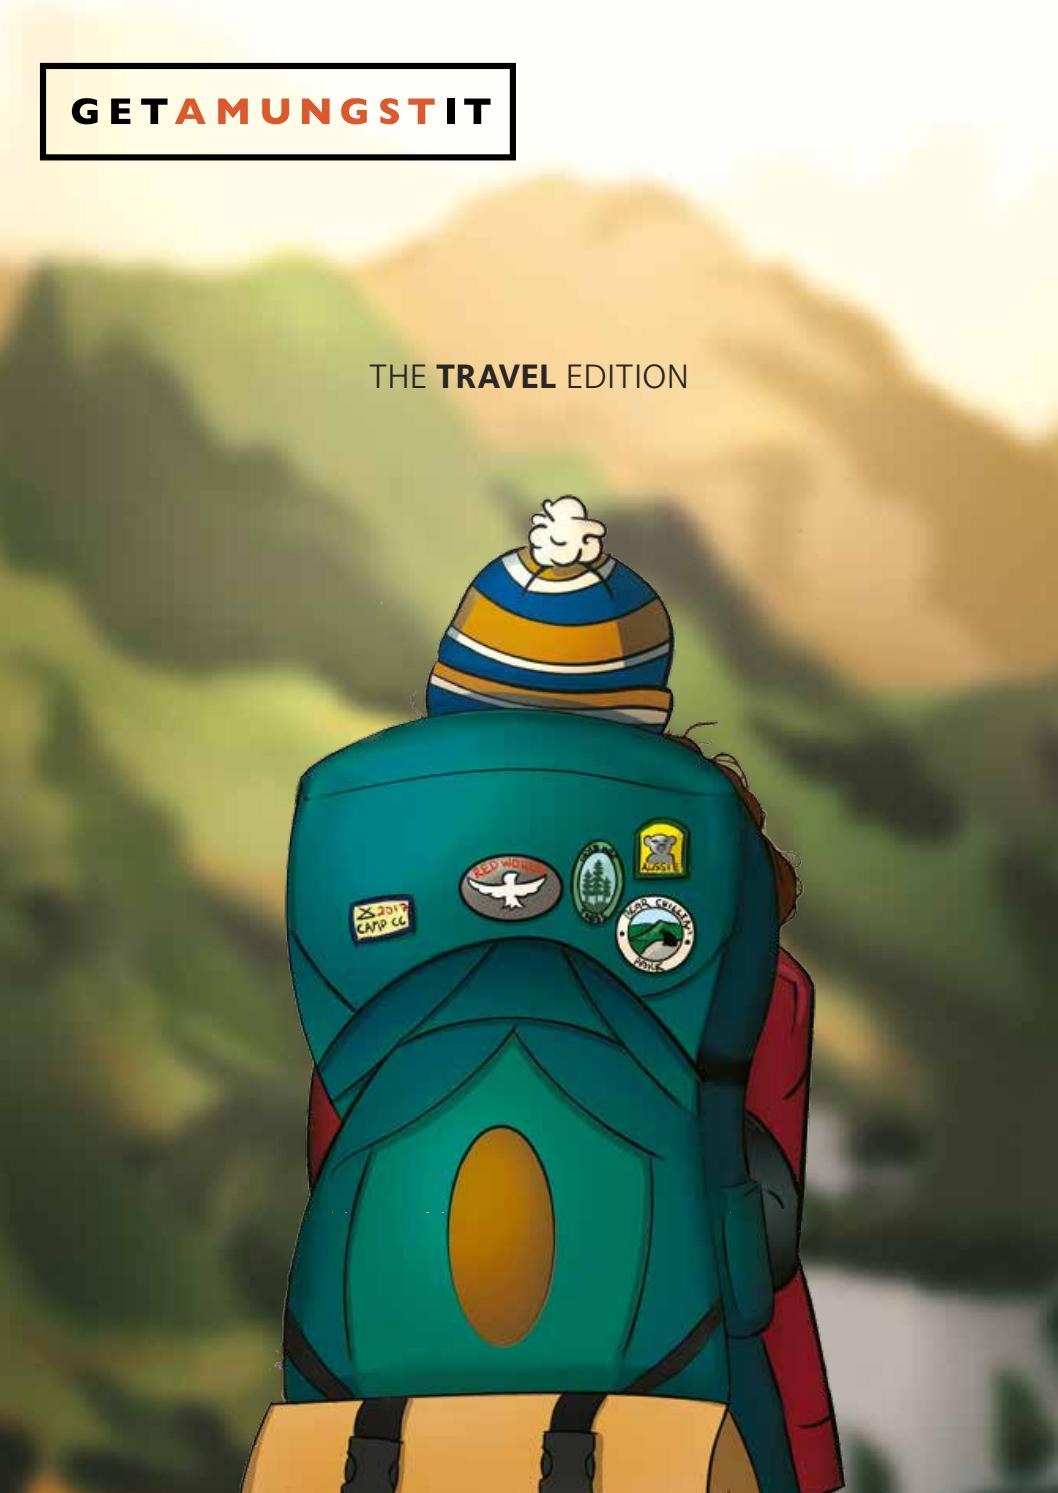 Getamungstit The Travel Edition (September 2017) by